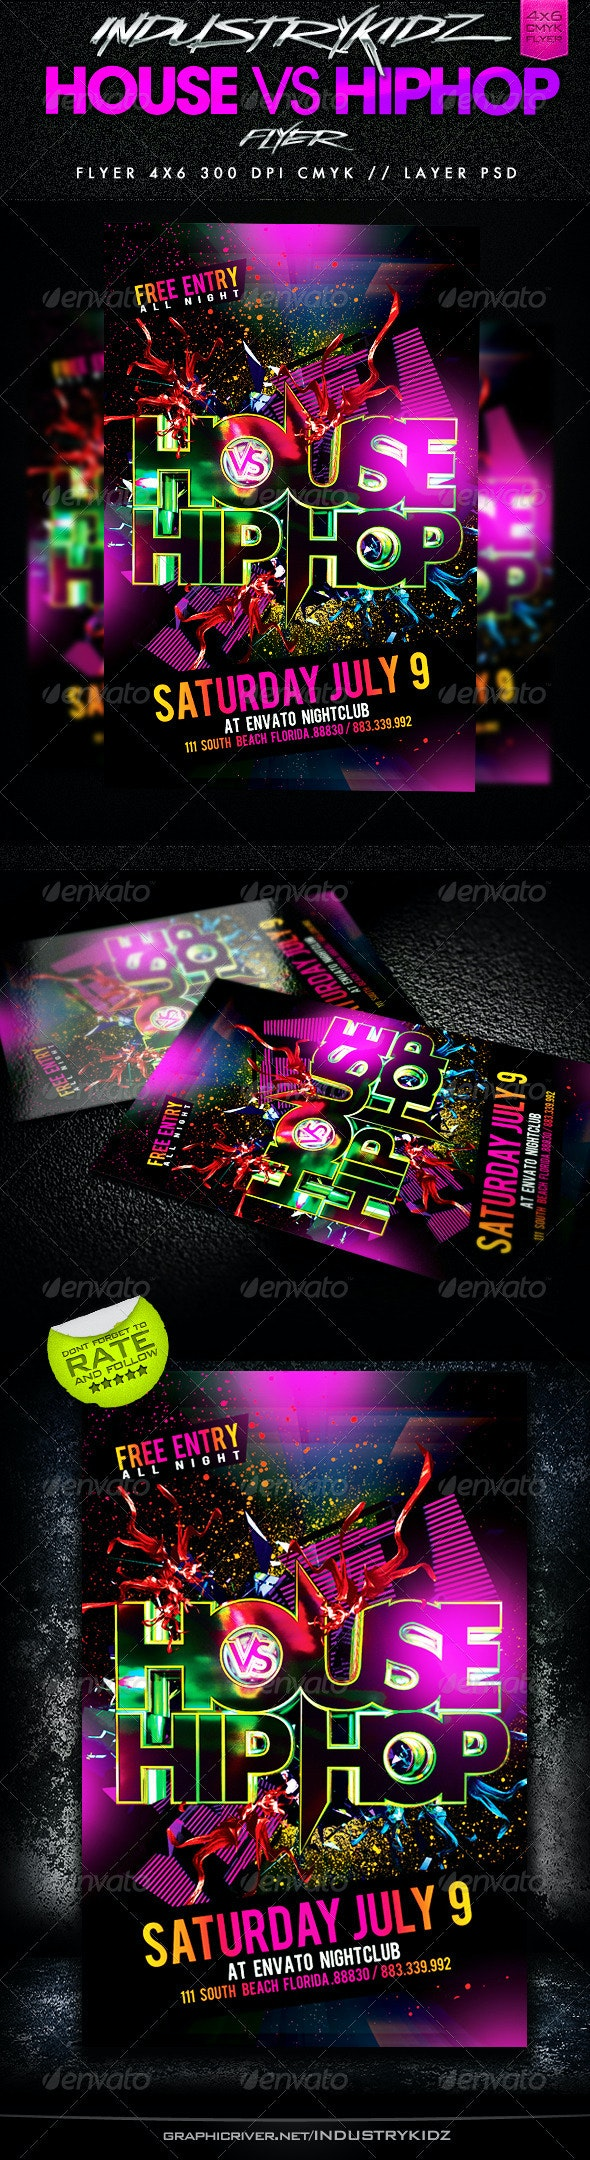 House Vs HipHop Party Flyer - Events Flyers